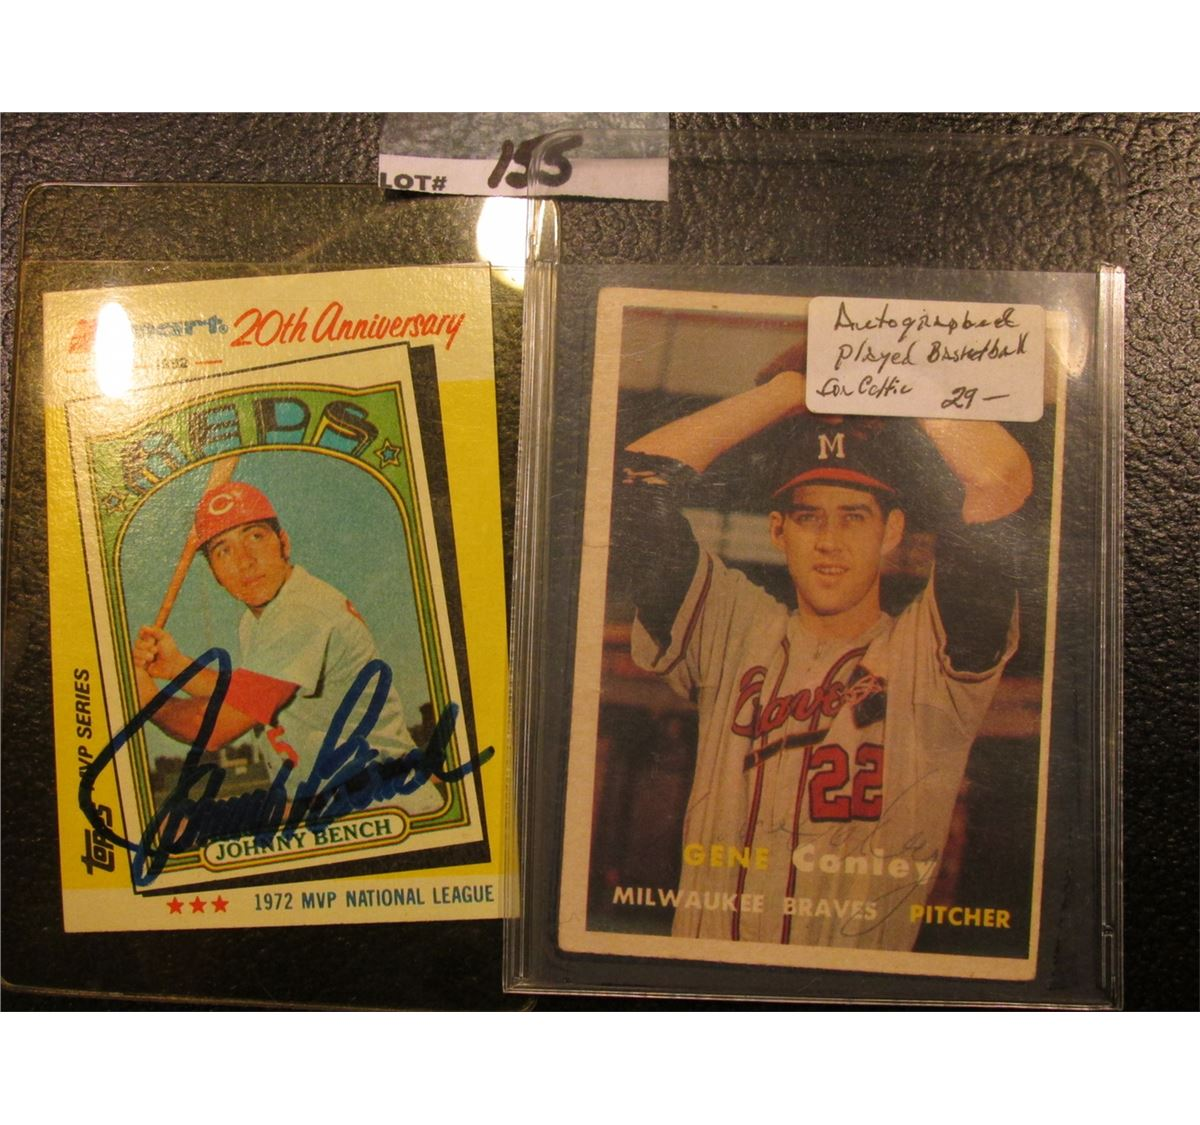 1982 Topps Johnny Bench Mvp Kmart 20th Anniversary Card With Original Autograph Gene Conley